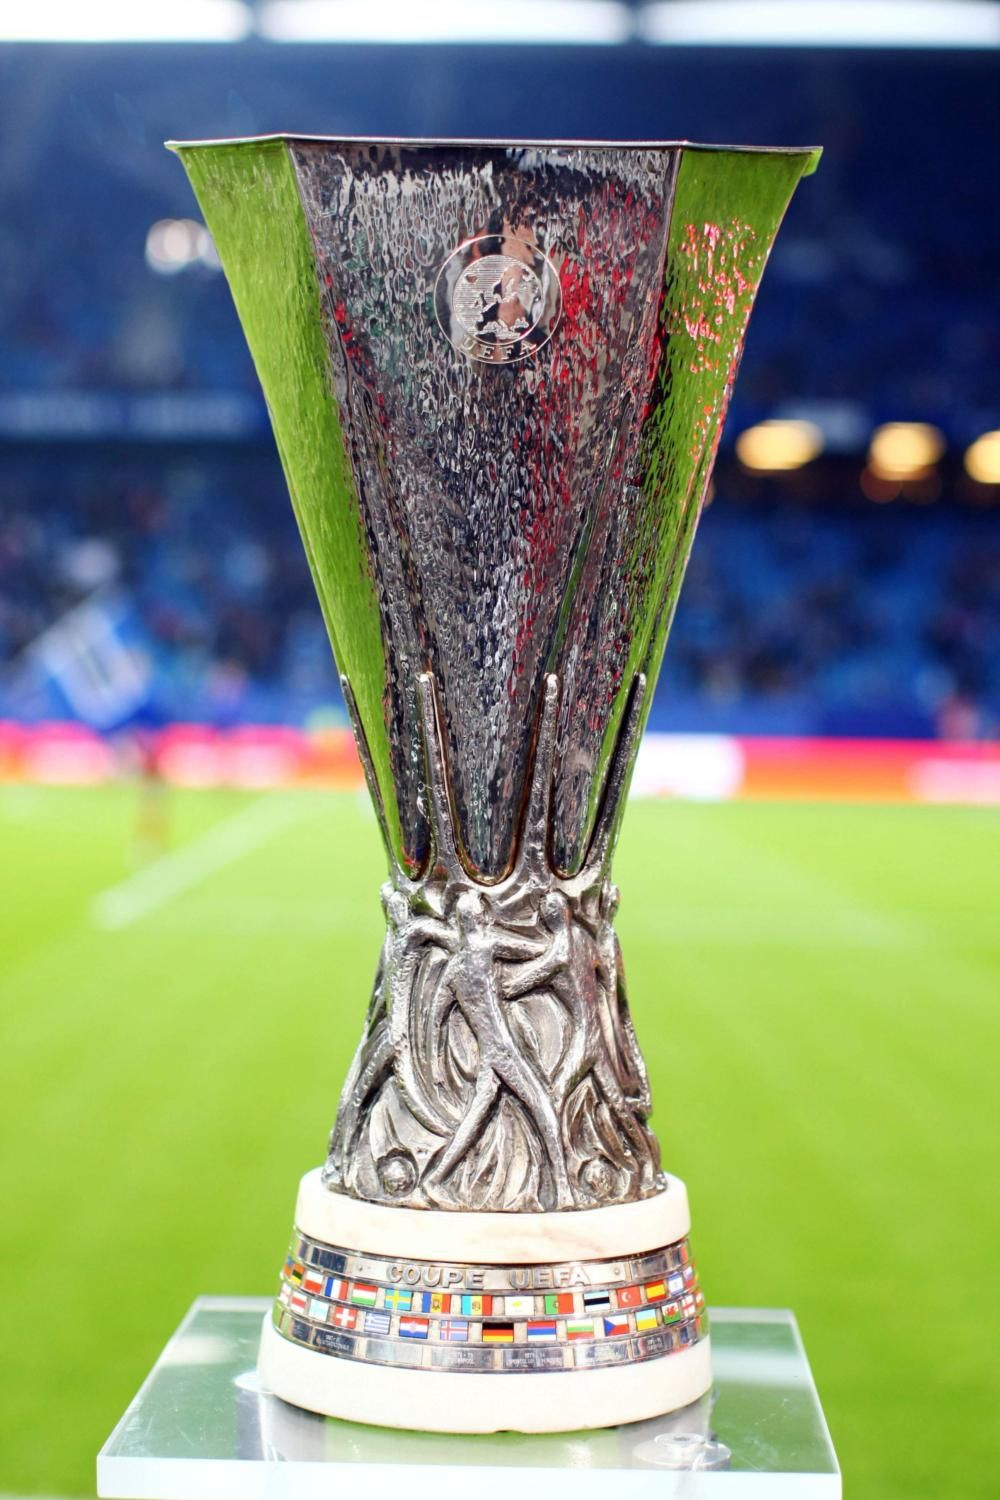 uefa europa league trophy european international clubs previously called the uefa cup http en wikipedia org wiki uefa europa league uefa europa league trophy european